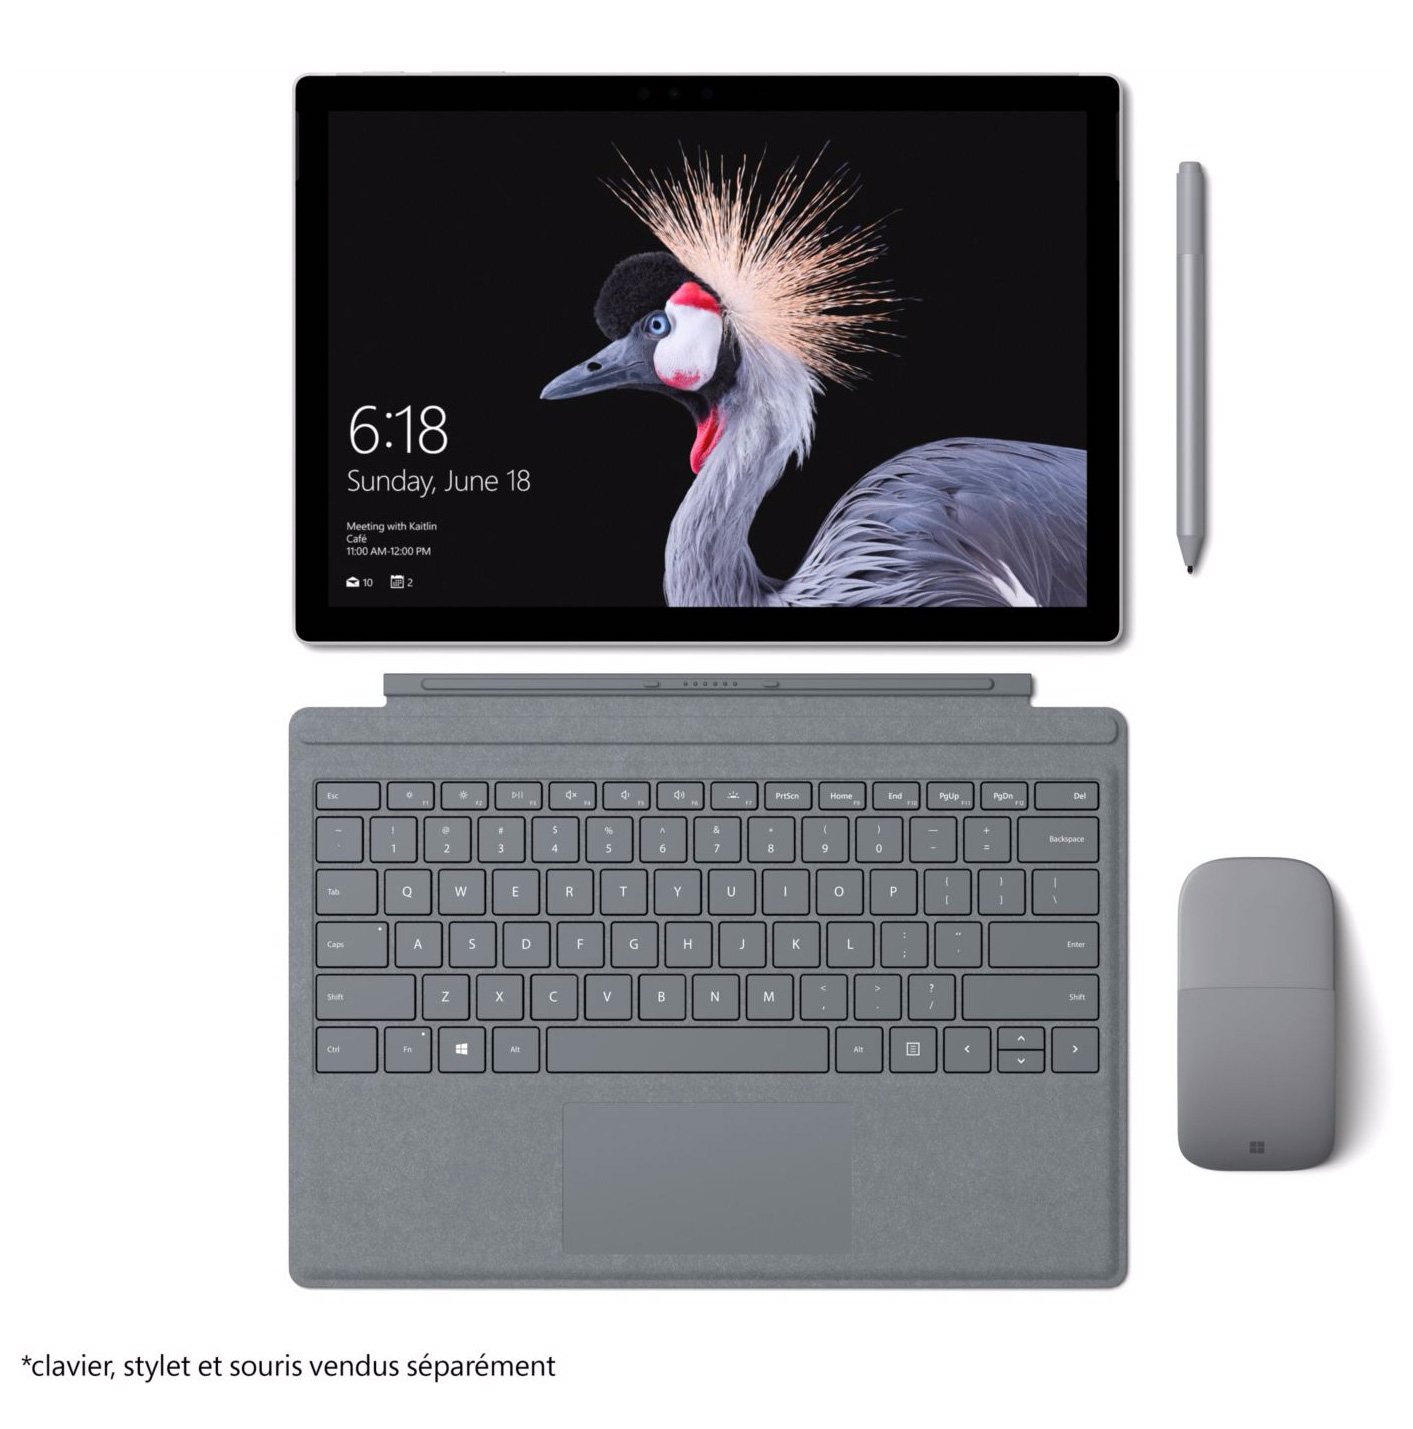 microsoft surface pro 5 i5 128 go 4 go achetez au meilleur prix. Black Bedroom Furniture Sets. Home Design Ideas